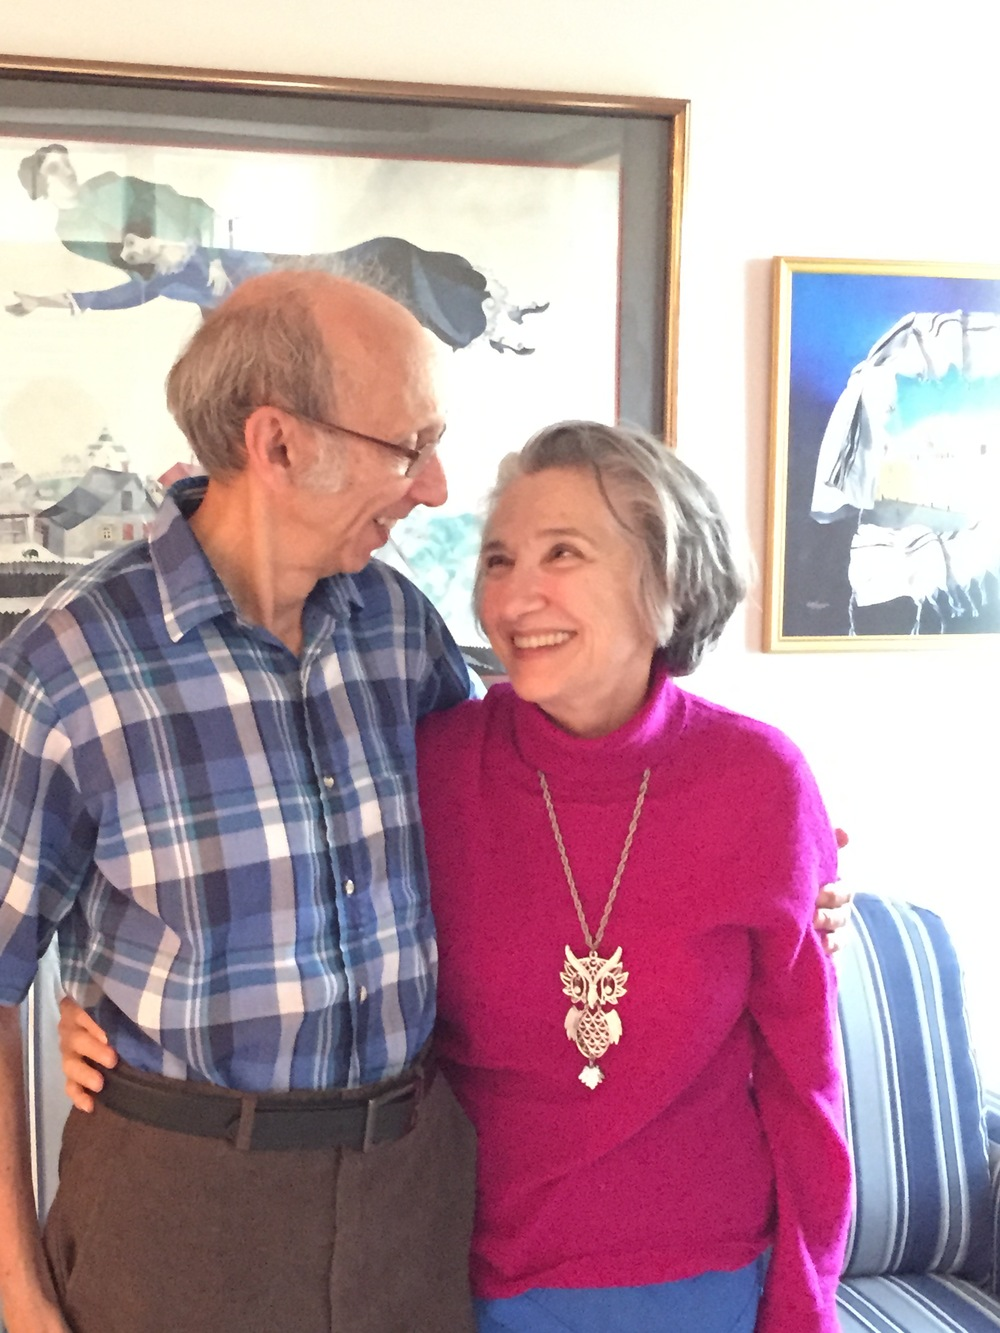 Click photo to download. Caption: Alan Poisner, 80, and Sharon Poisner, a few years his junior, were married last October. They met at the Village Shalom retirement community in Overland Park, Kansas. Credit: Maayan Jaffe.